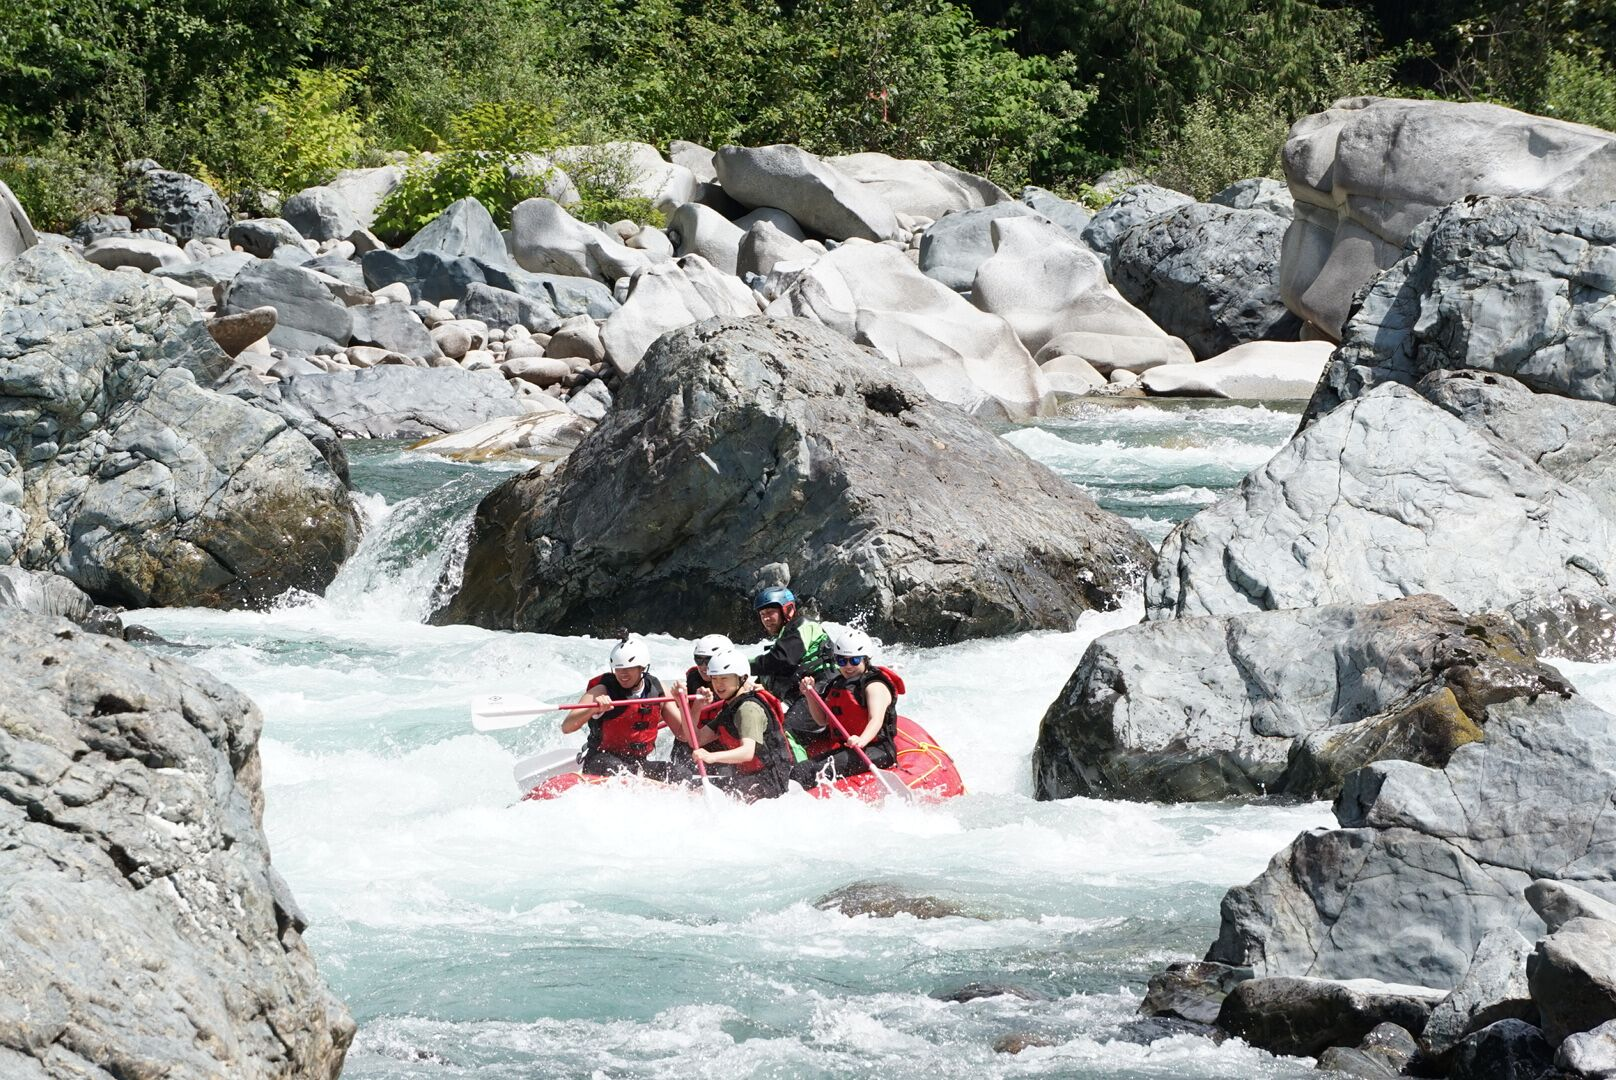 We hire fully trained guides to run our guests down the river. We take pride in putting safety first.